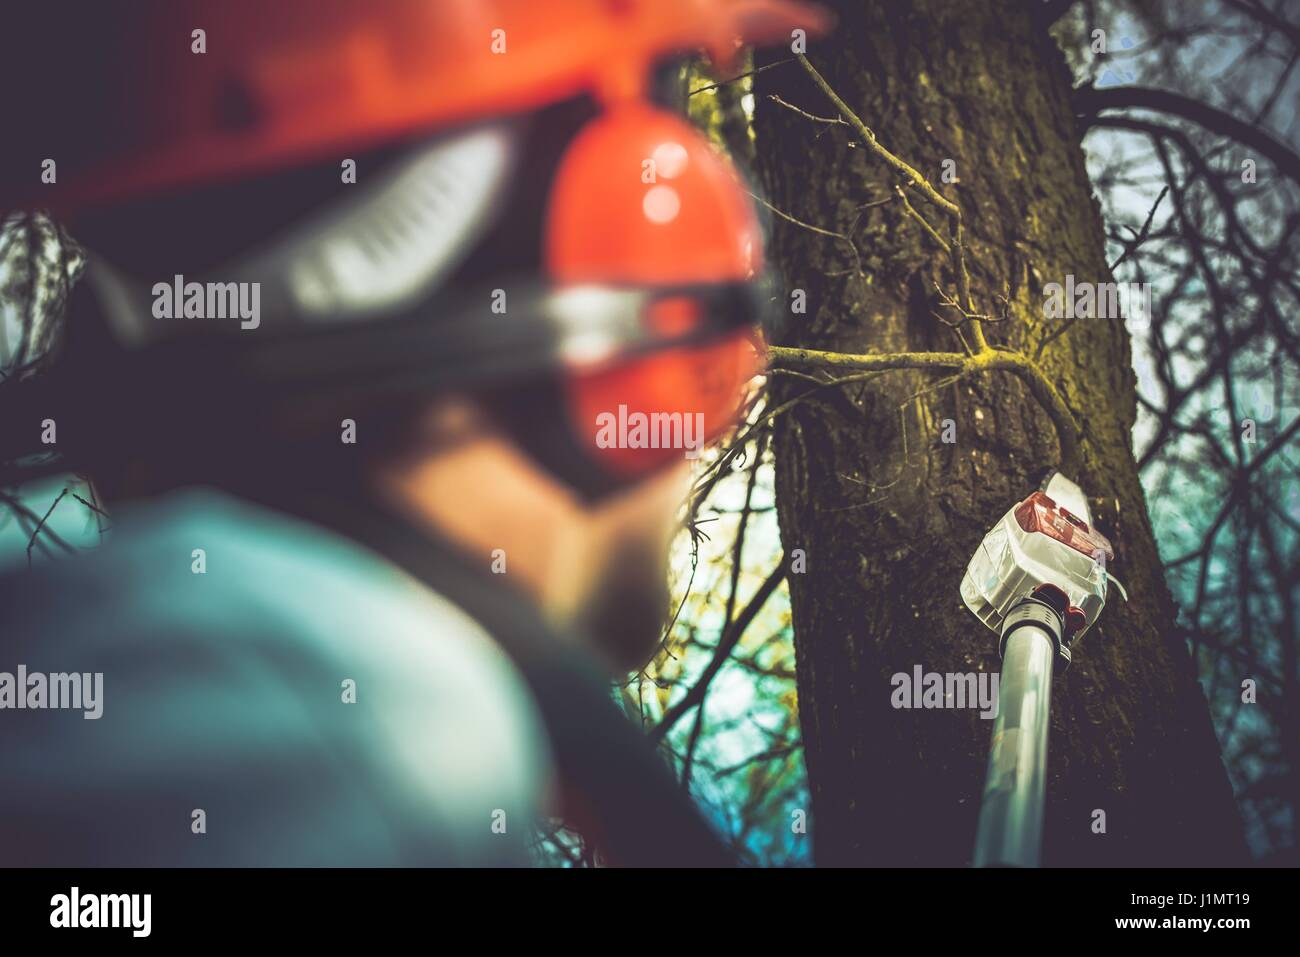 Taking Care of Trees by Removing Damaged and Dead Tree Branches Using Electric Wood Cutter on Extended Pole. Professional - Stock Image